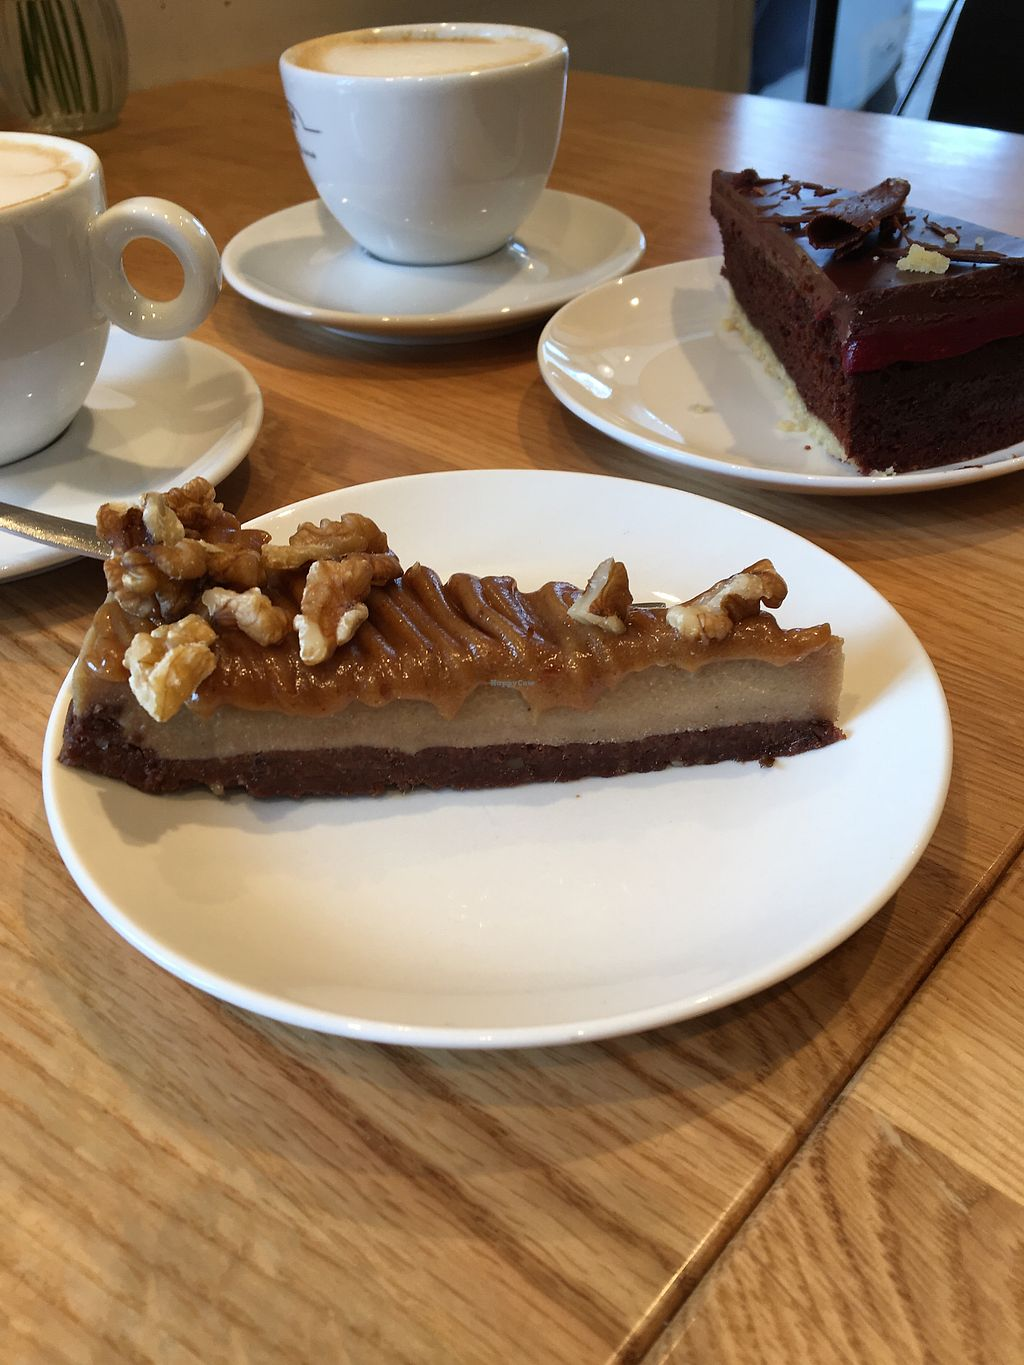 """Photo of Spirit  by <a href=""""/members/profile/Fabivegan"""">Fabivegan</a> <br/>Vegan desserts in spirit  <br/> March 25, 2018  - <a href='/contact/abuse/image/82798/376049'>Report</a>"""